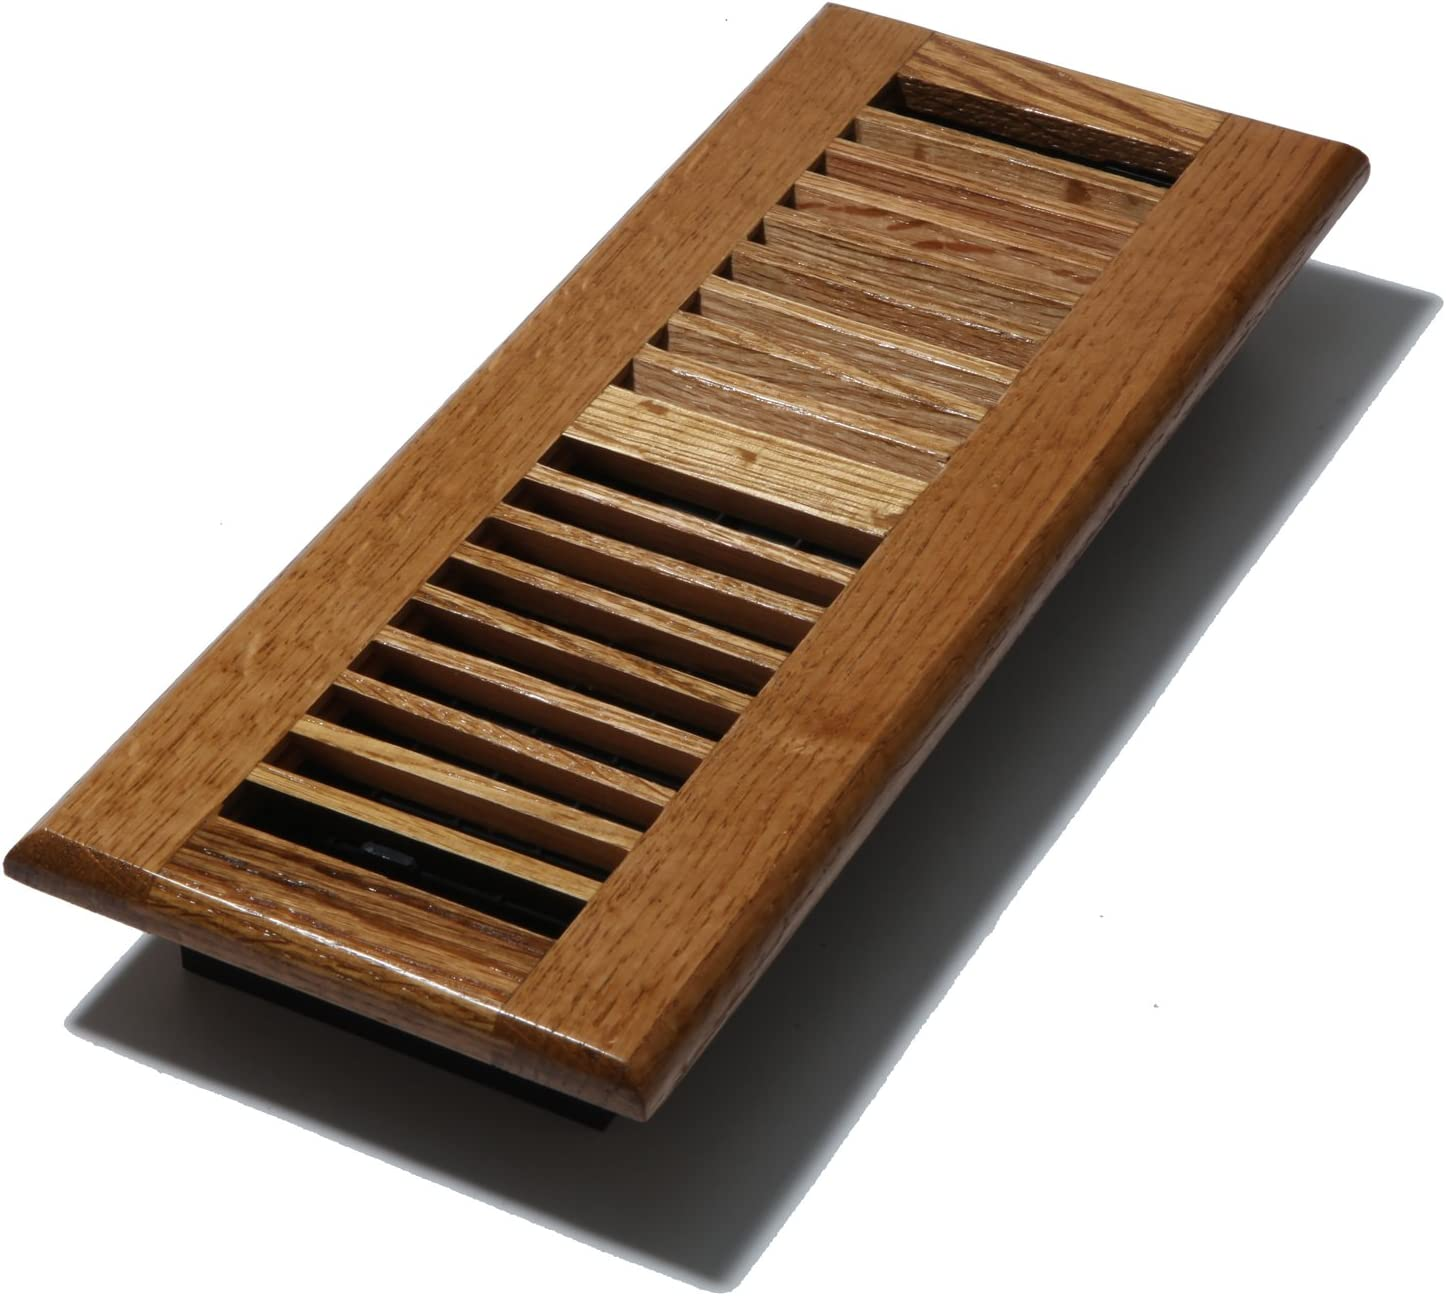 Decor Grates WL412-M 4-Inch by 12-Inch Wood Louver Floor Register, Medium Oak